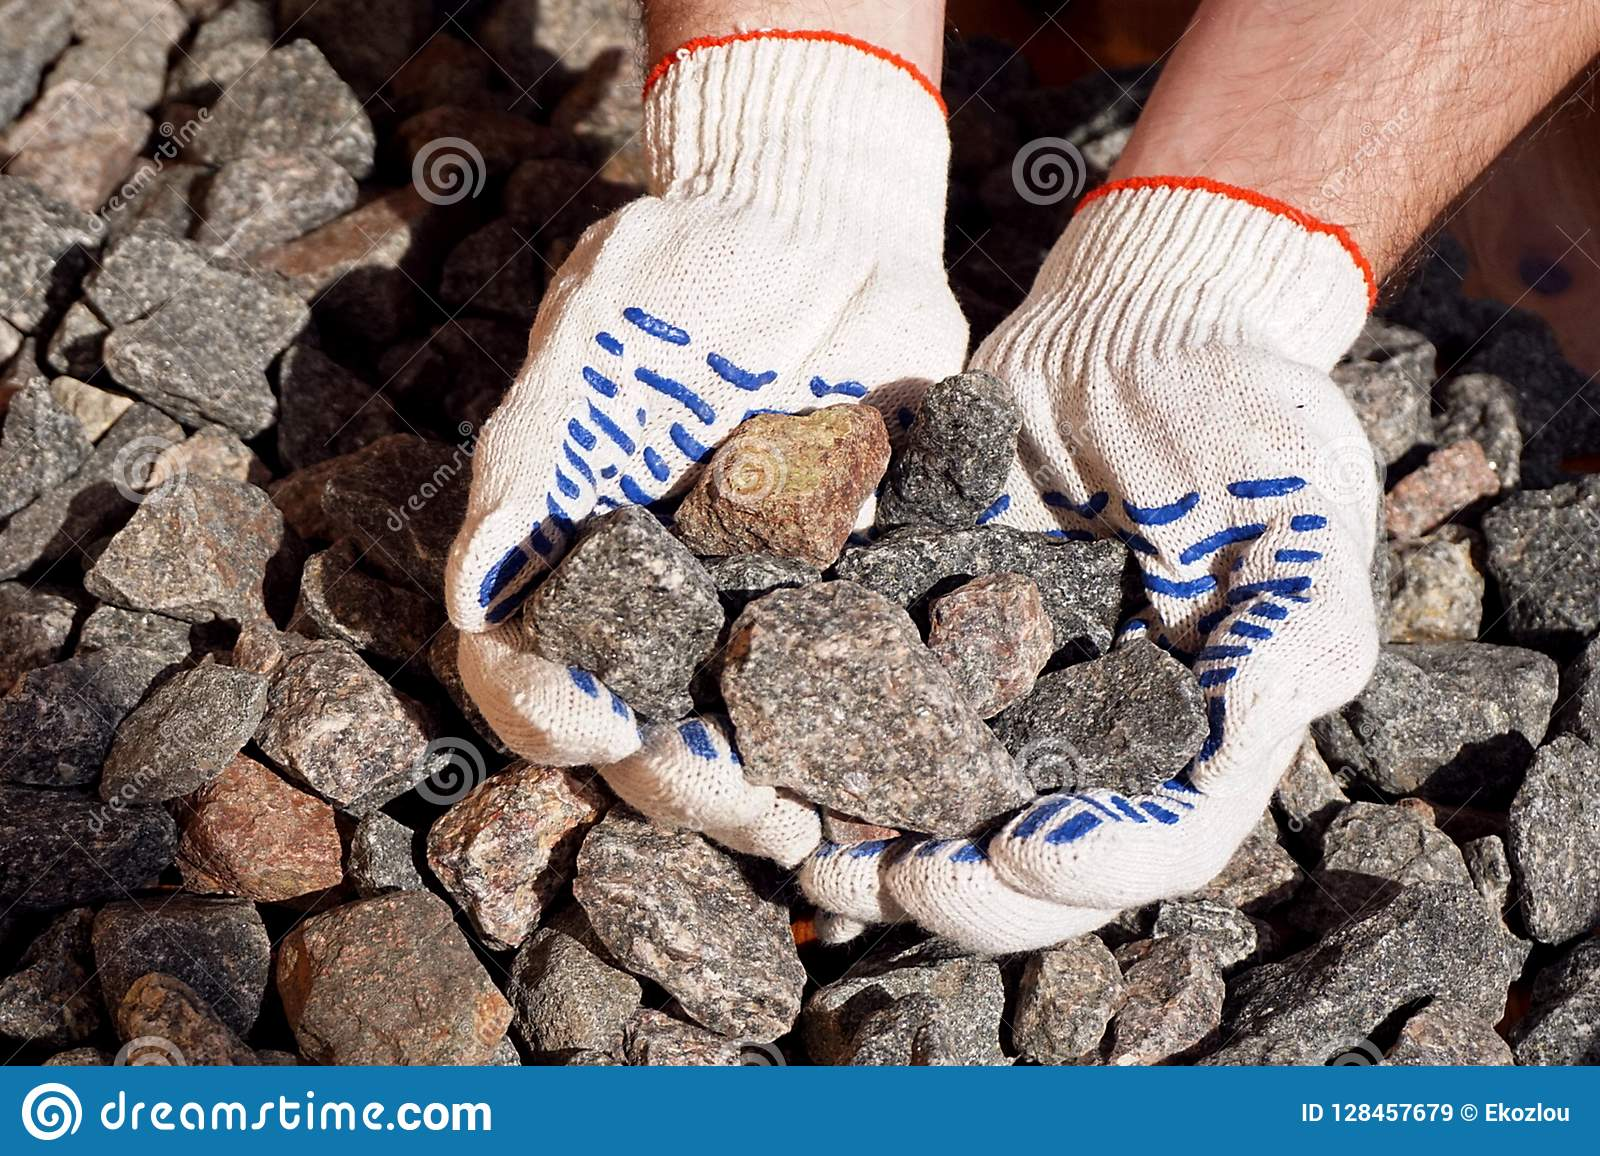 Crushed stone in hands